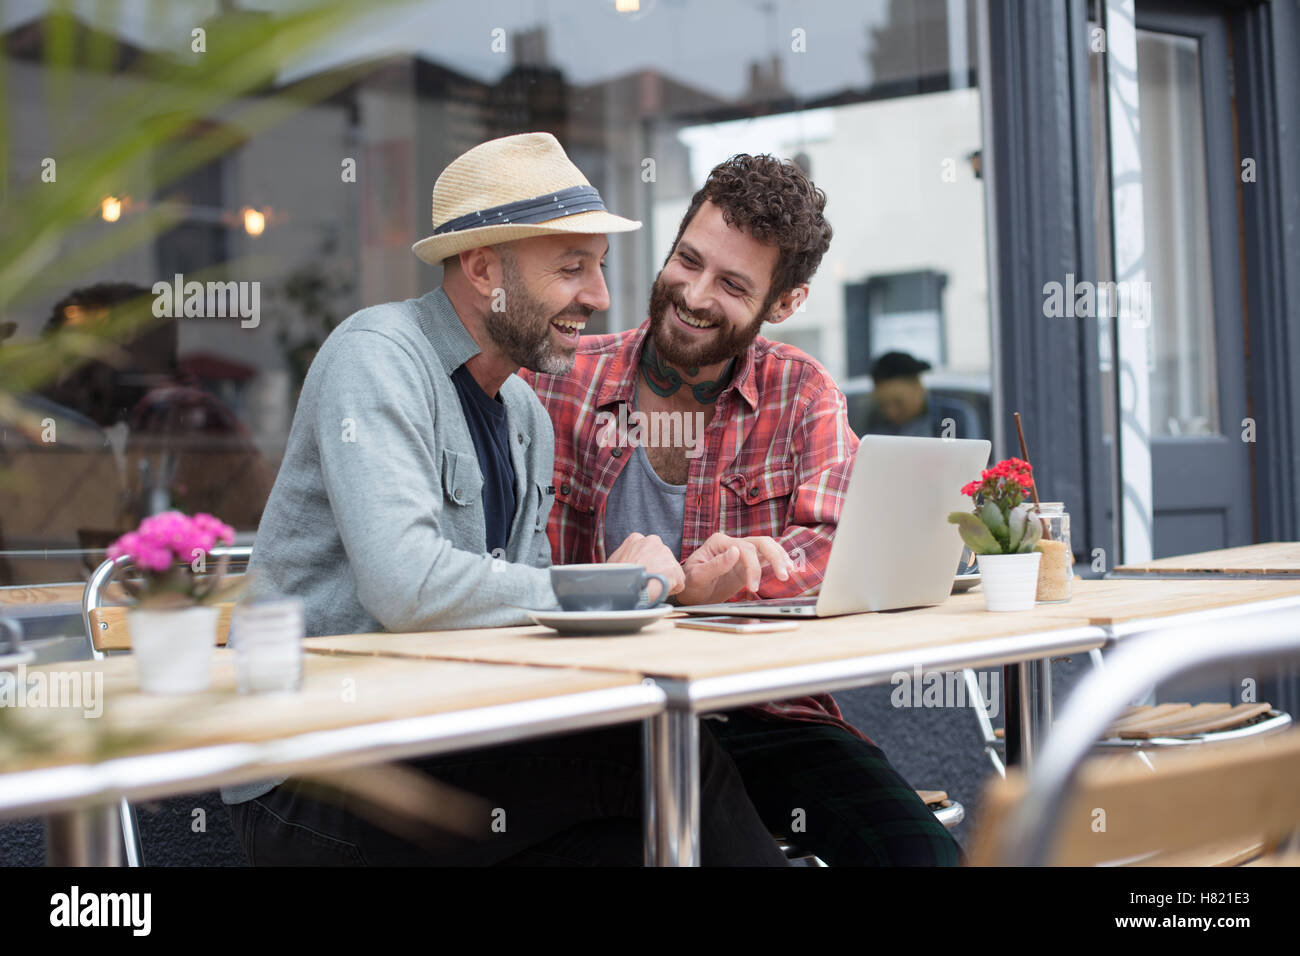 Couple Gay laptop in cafe partage sat Photo Stock